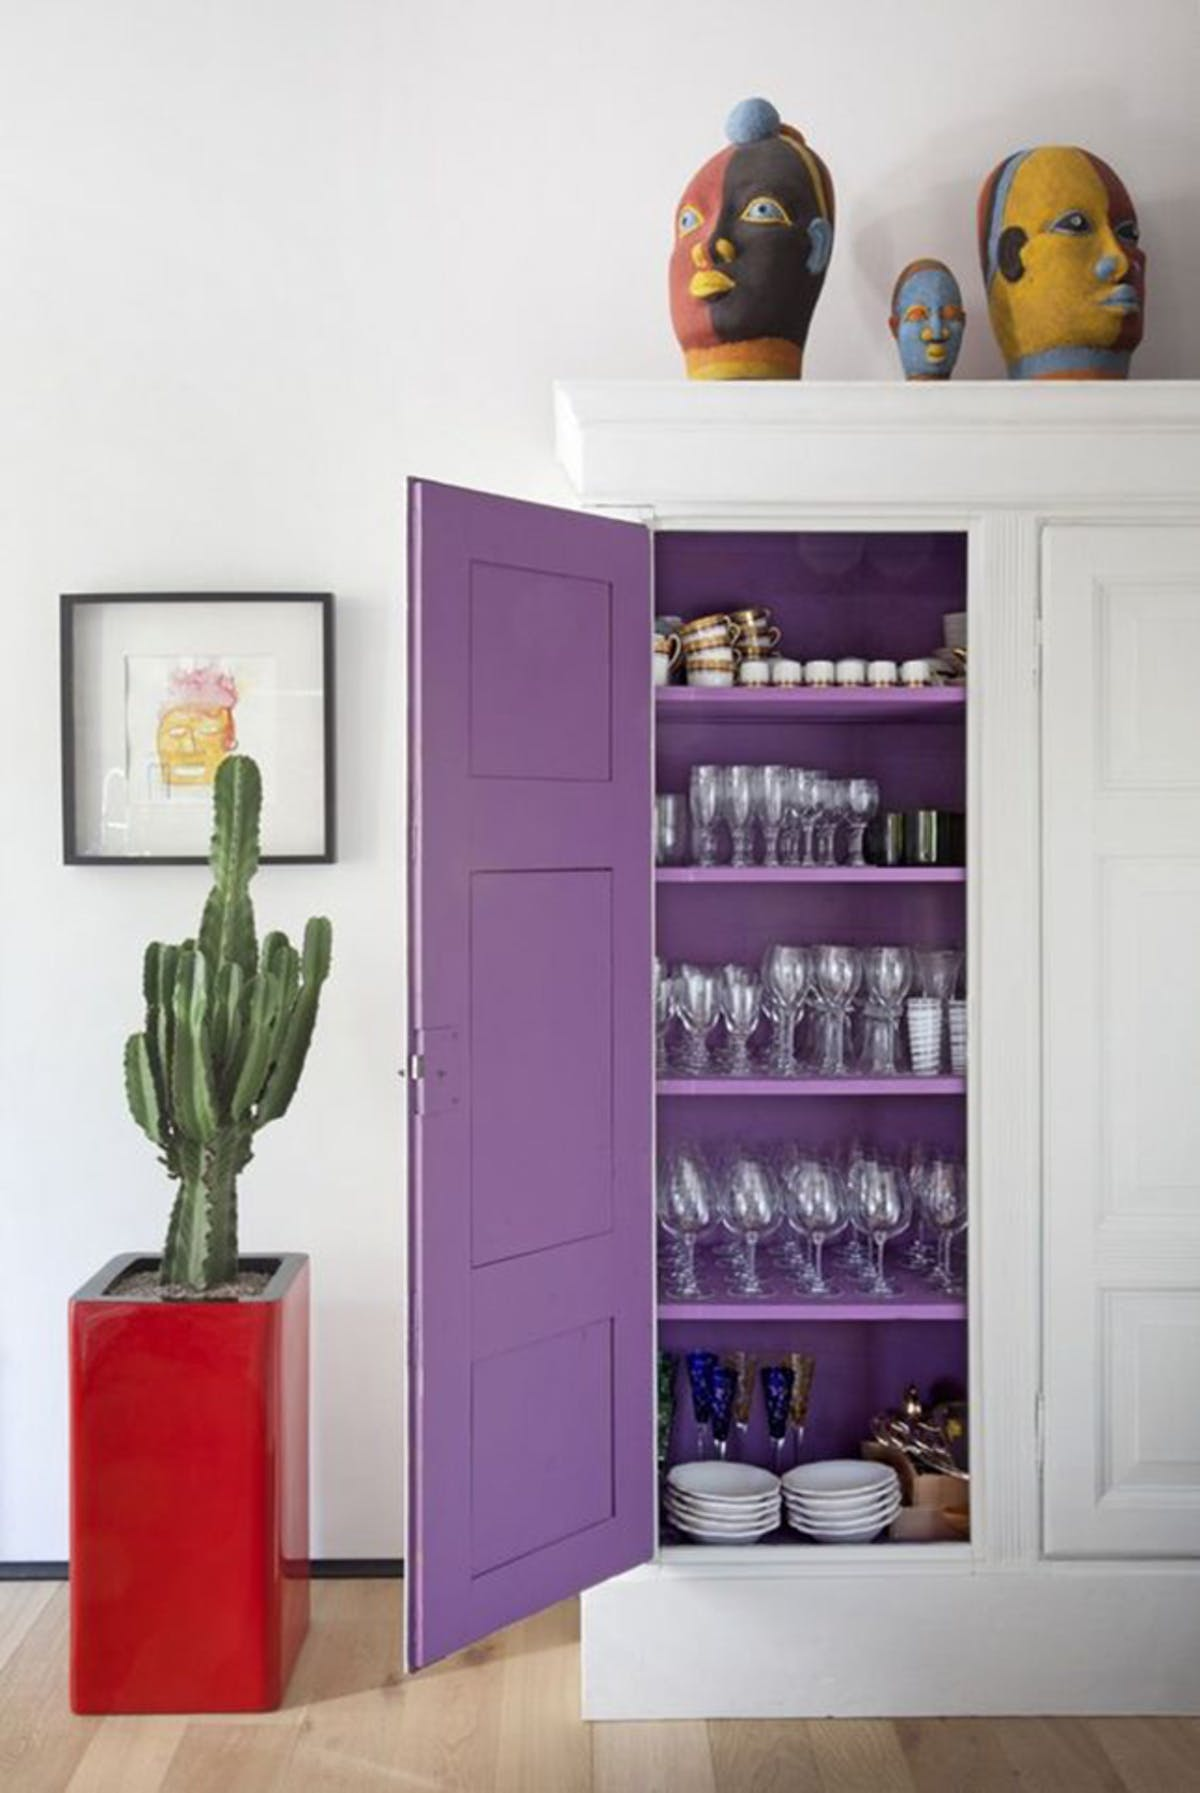 7 Essential Ways to Make UltraViolet the Star of Your Home Decor_1 ultra violet 7 Essential Ways to Make Ultra Violet the Star of Your Home Decor 5 Essential Ways to Make Ultra Violet the Star of Your Home Decor 6